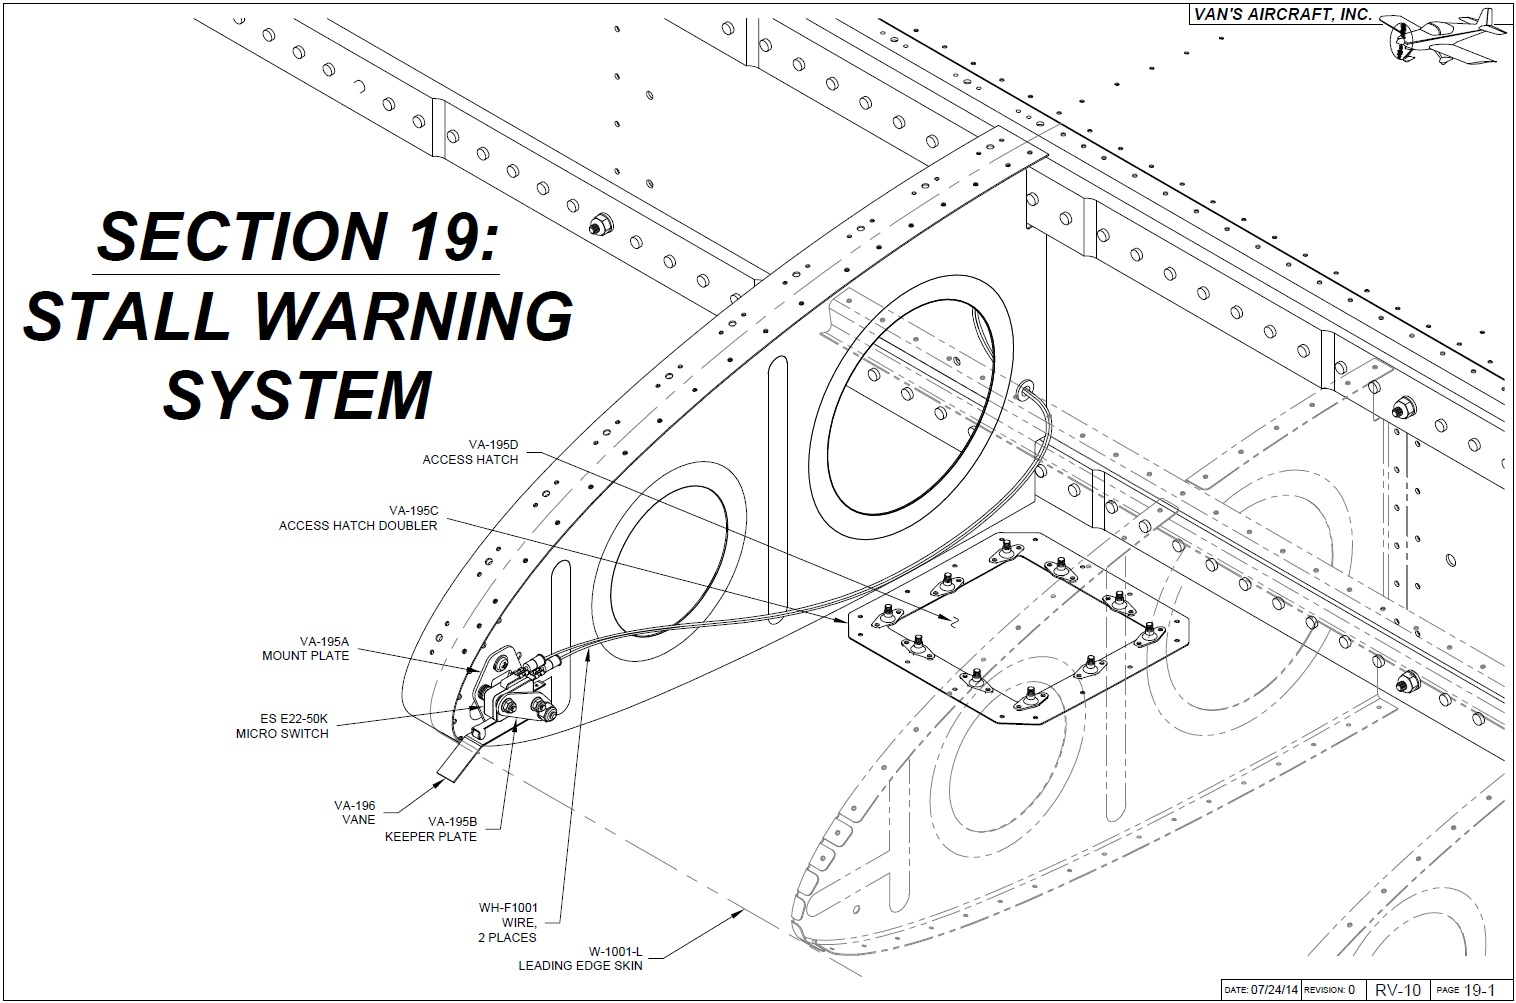 11047961564587486 together with Cessna 172 Alternator Wiring Diagram further 2005 Dodge Ram 1500 Fender Diagram further 53643 besides TM 55 6695 217 130010. on aircraft wiring diagrams